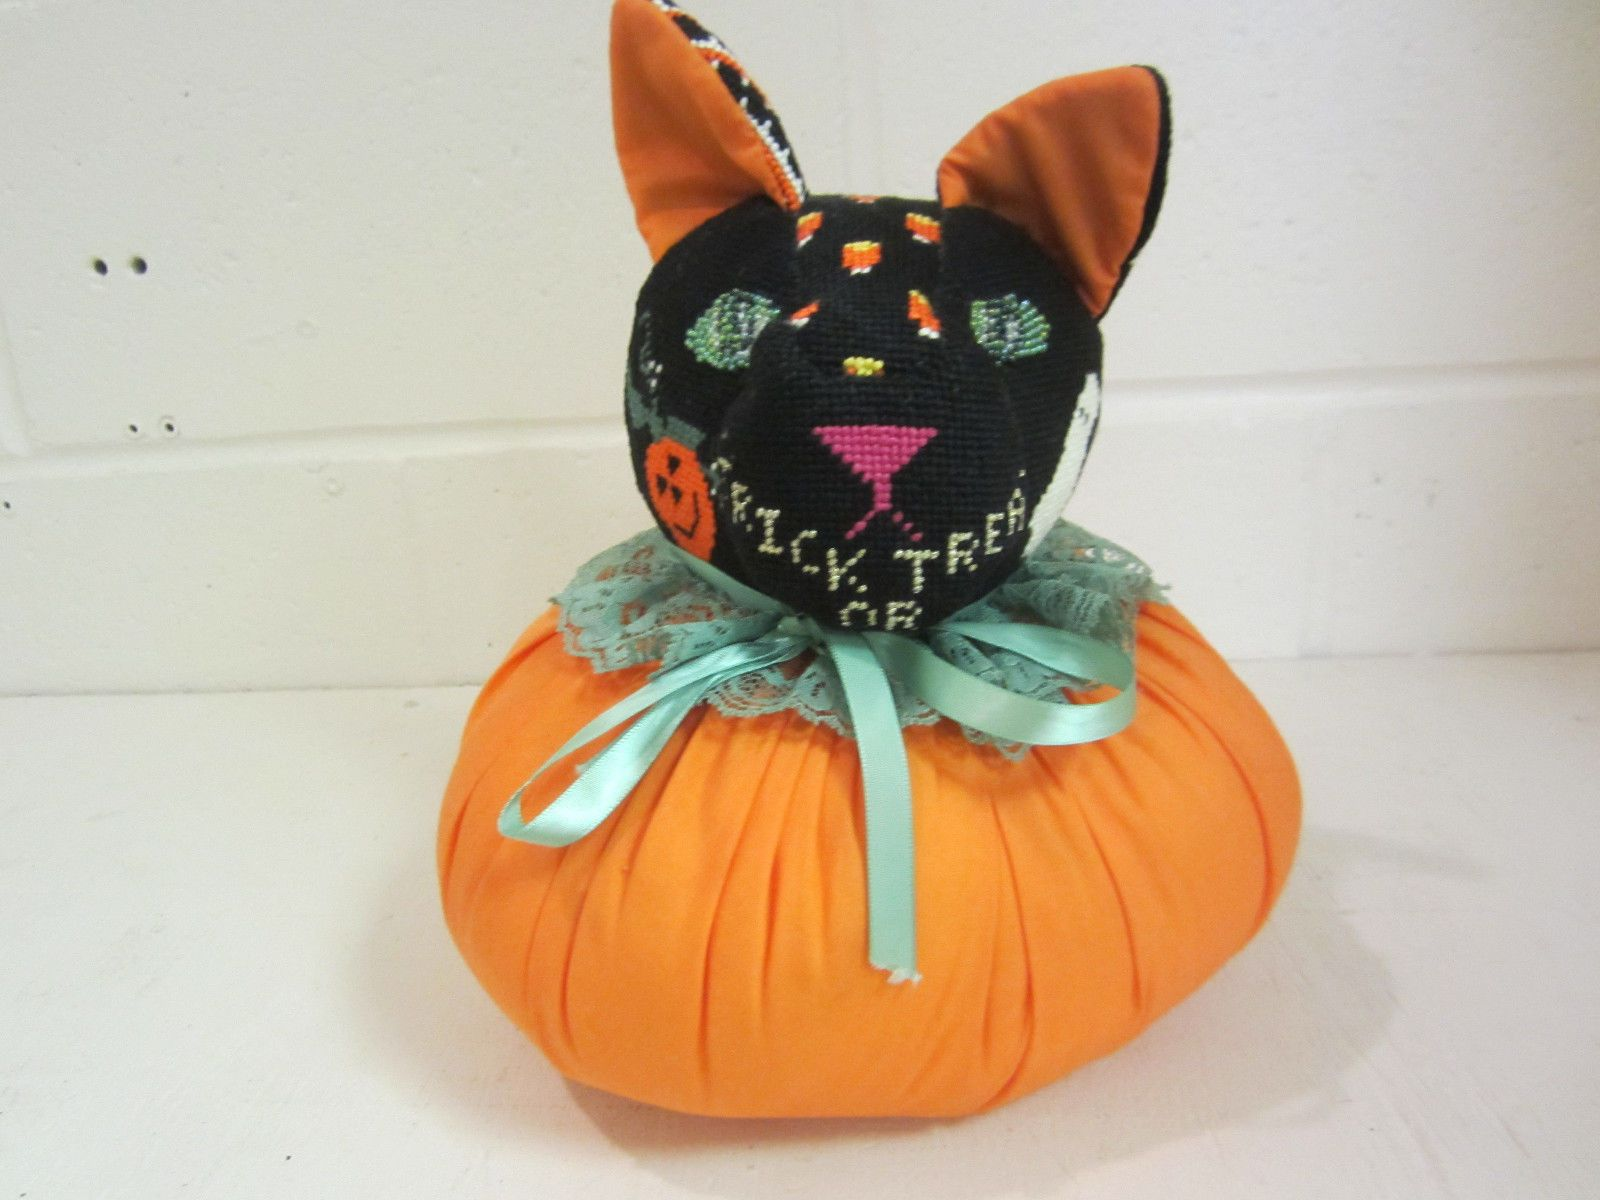 Needlepoint Halloween Black Cat with Mask and Pumpkin Stands Up (Finished) | eBay